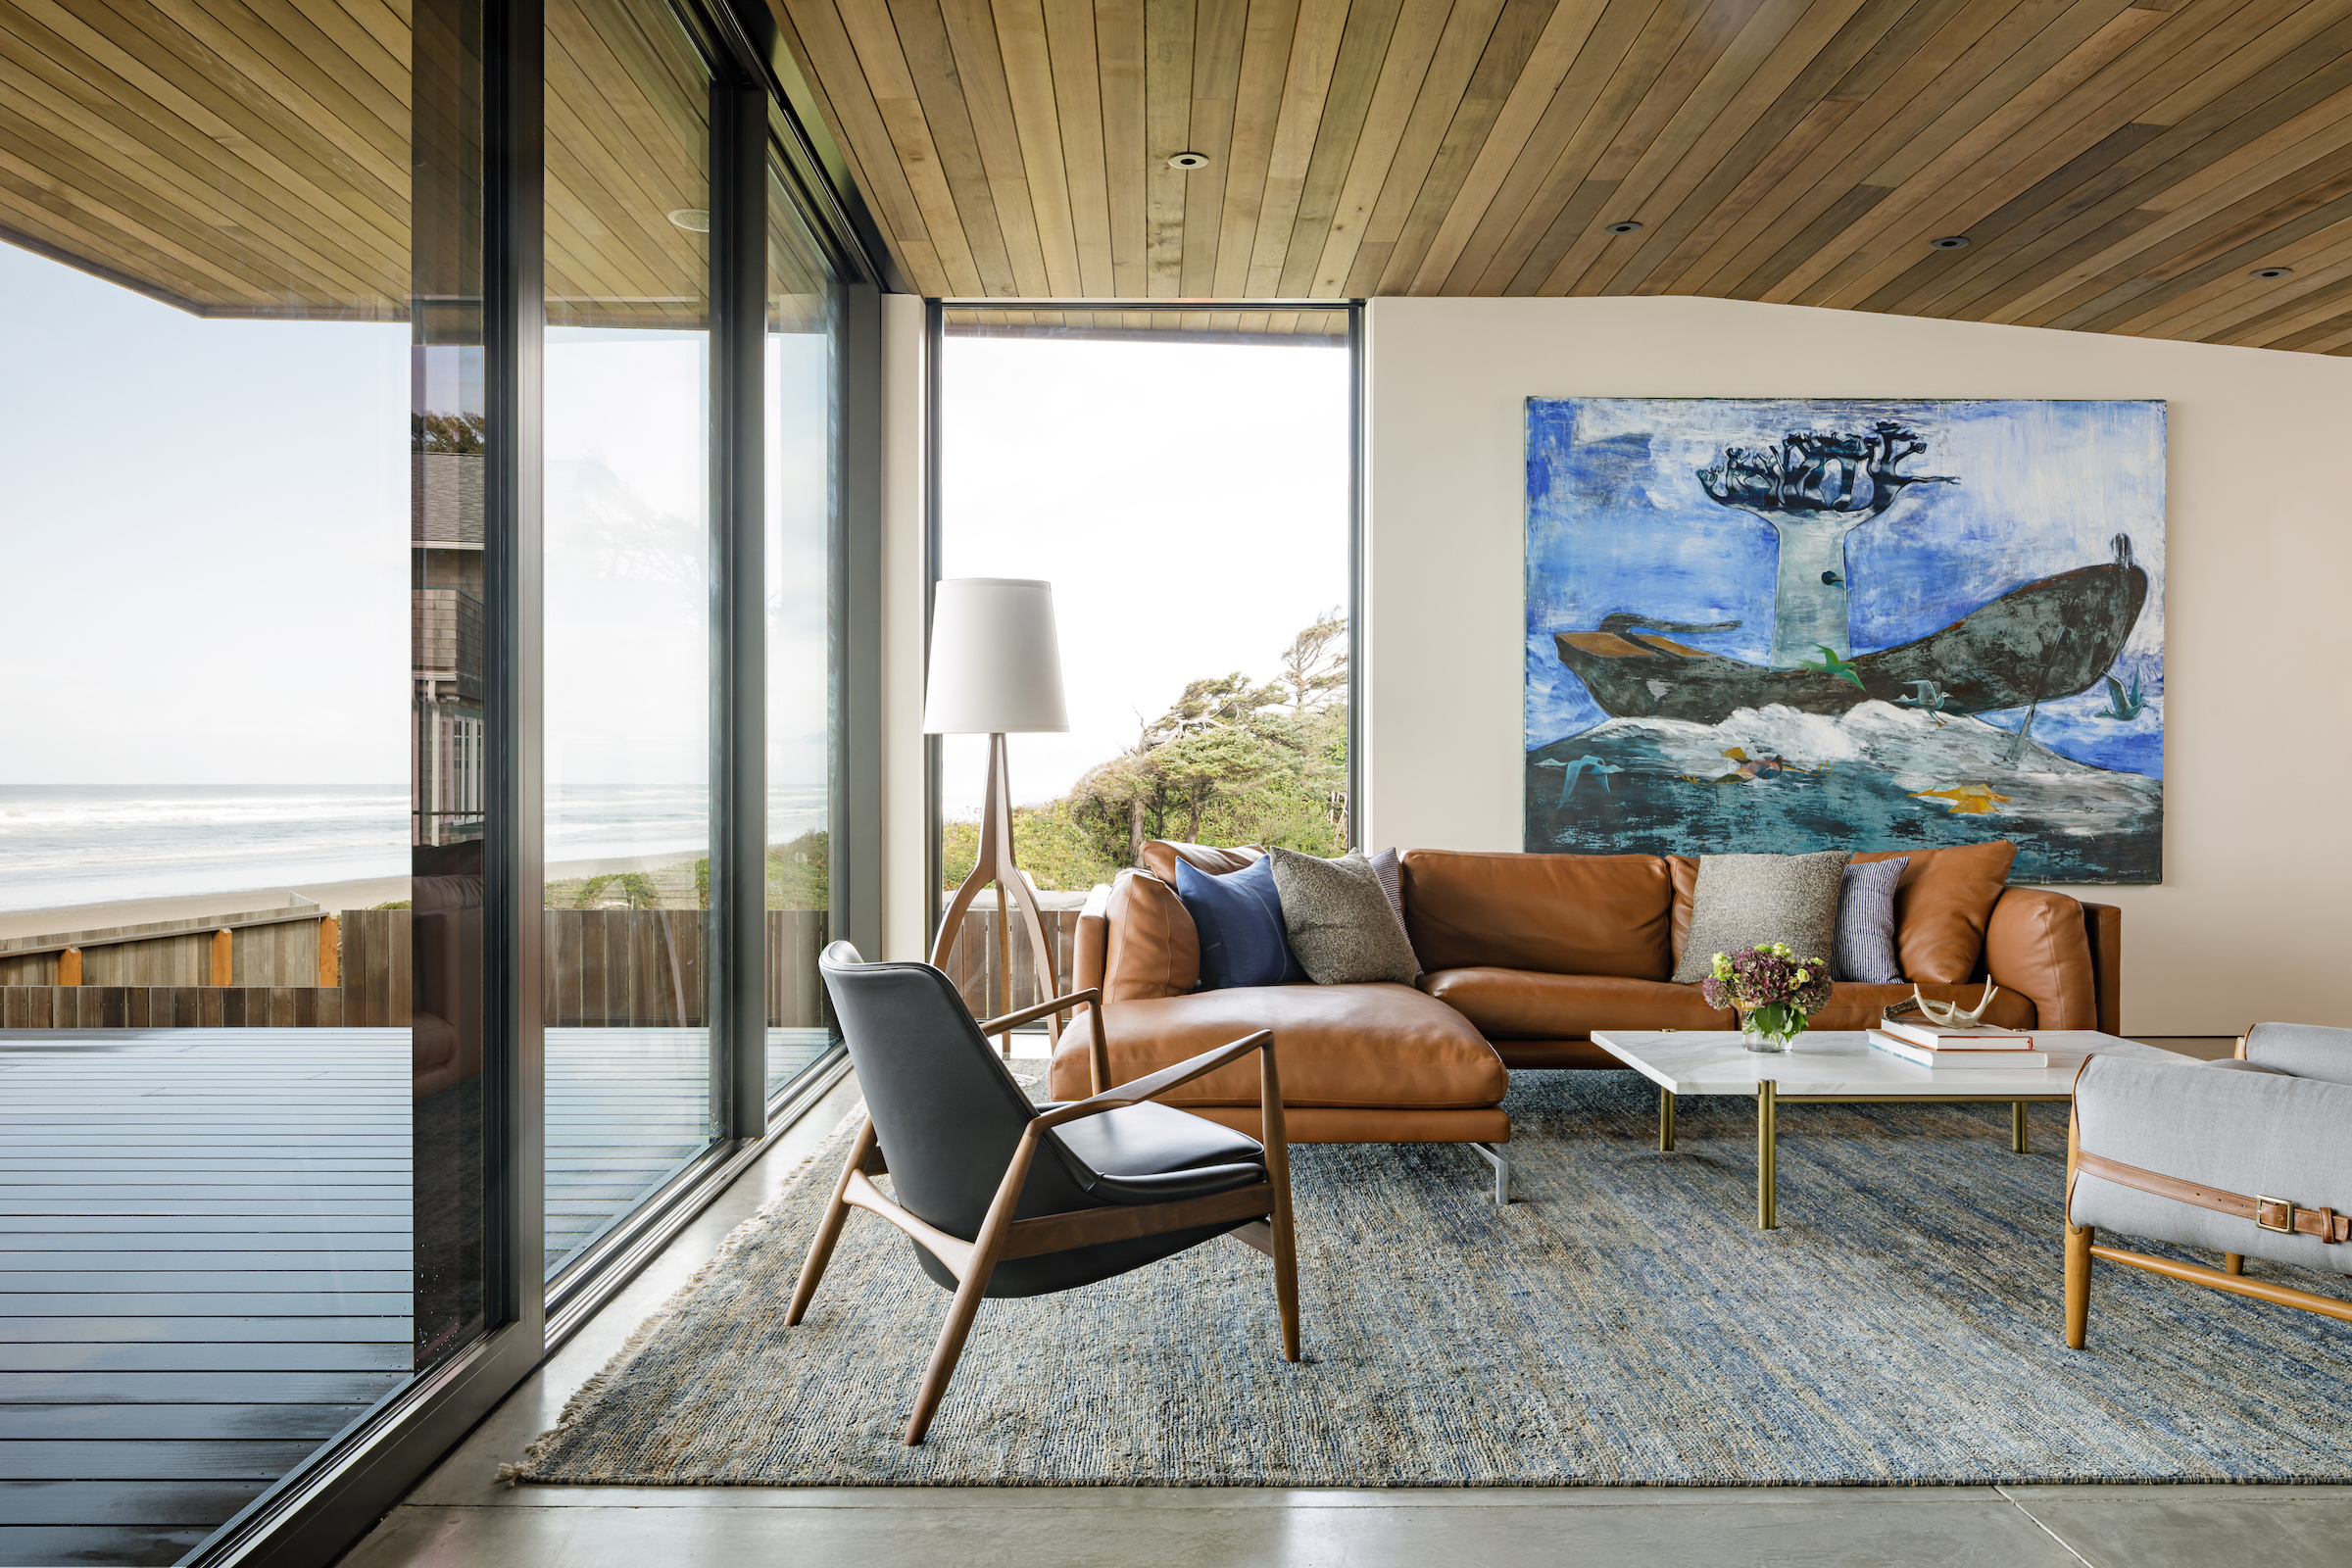 Luxe Magazine - An Oregon Beach House is All About Clean LinesJanuary 2018 (Cover)